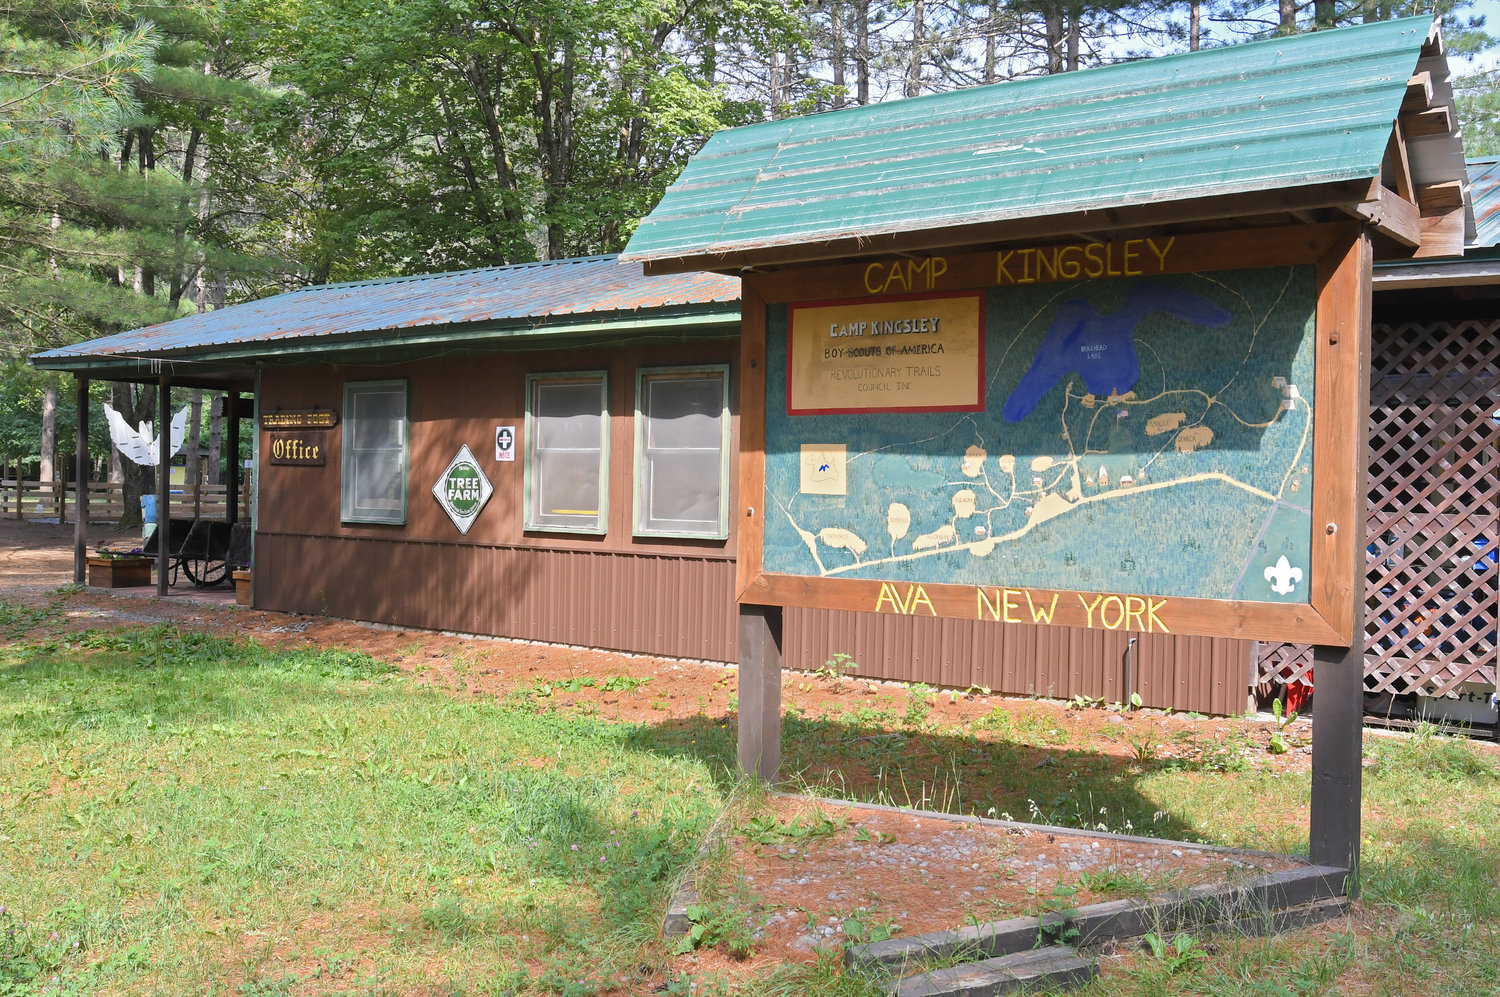 SCOUTS SEEK ADDITIONAL FACILITY — For the Camp Kingsley site in Ava, the local Boy Scouts organization has launched a fund drive that aims to raise $200,000 by next July 4 for construction of a new welcome center. A donor has pledged an additional $100,000 if the drive is successful.